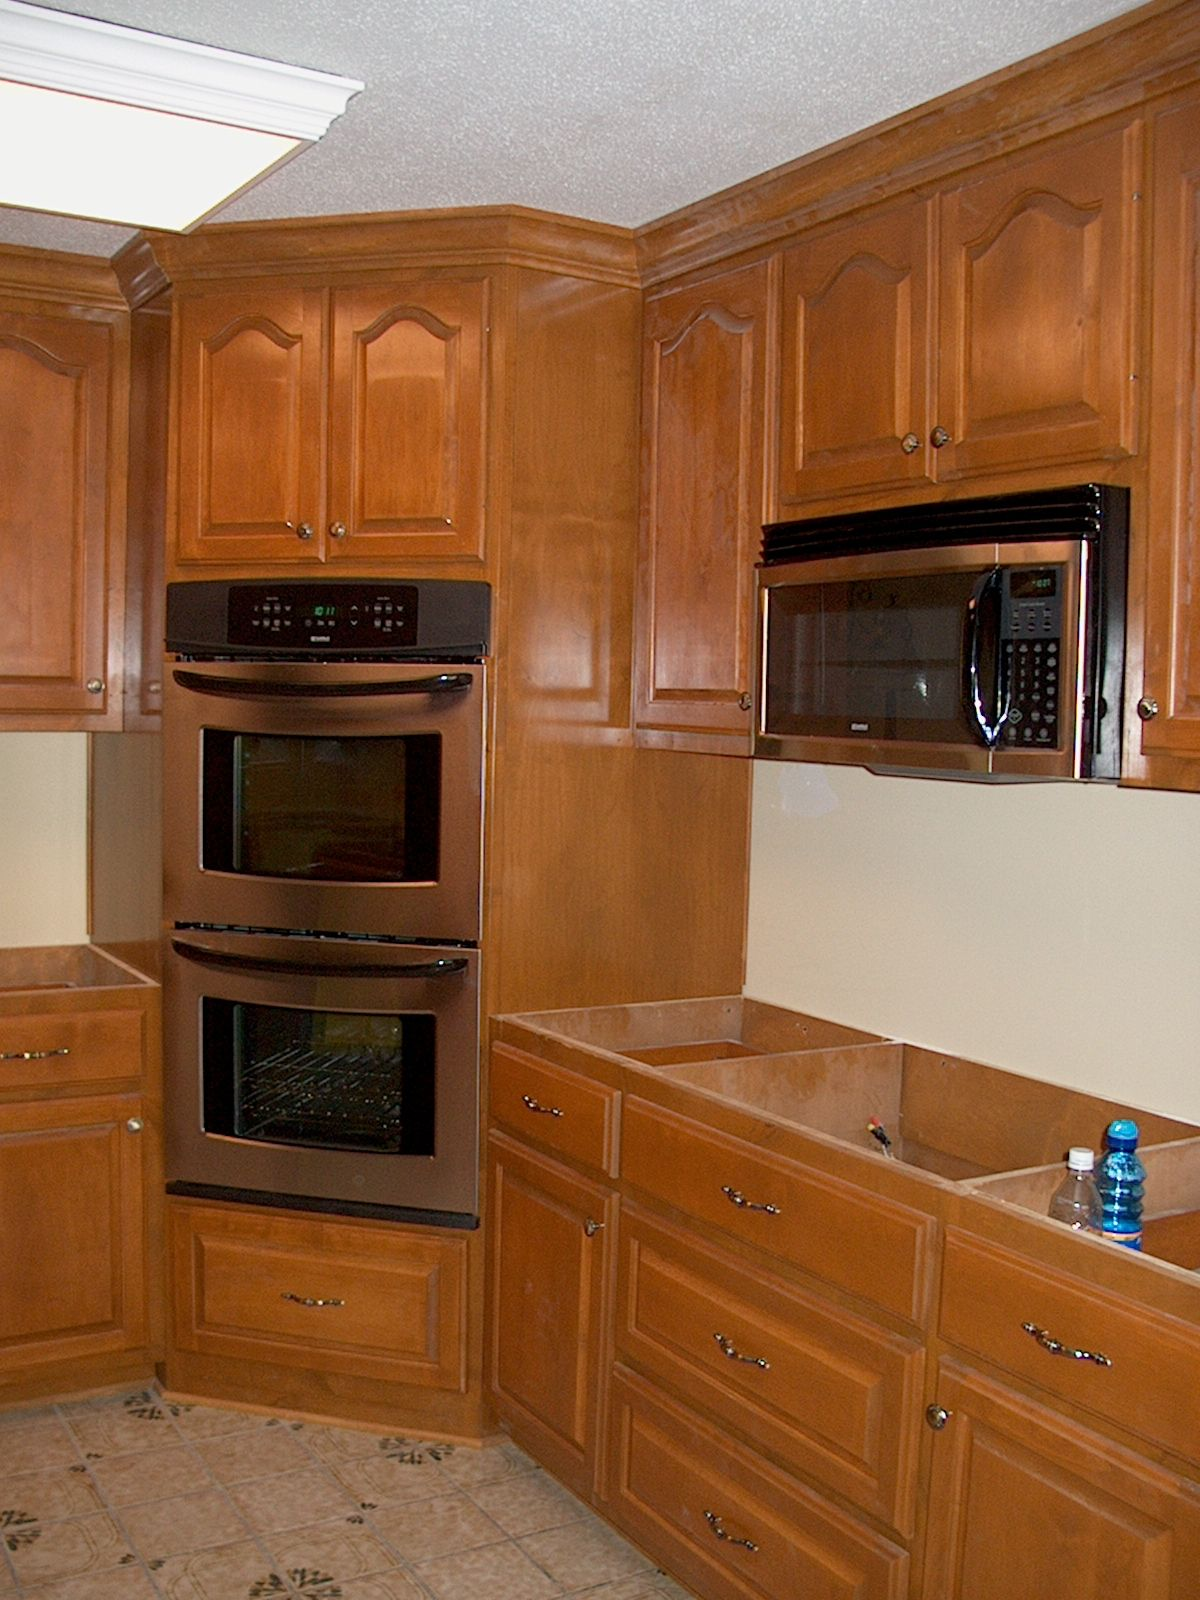 corner cabinet for double oven | the photos shown here are only a